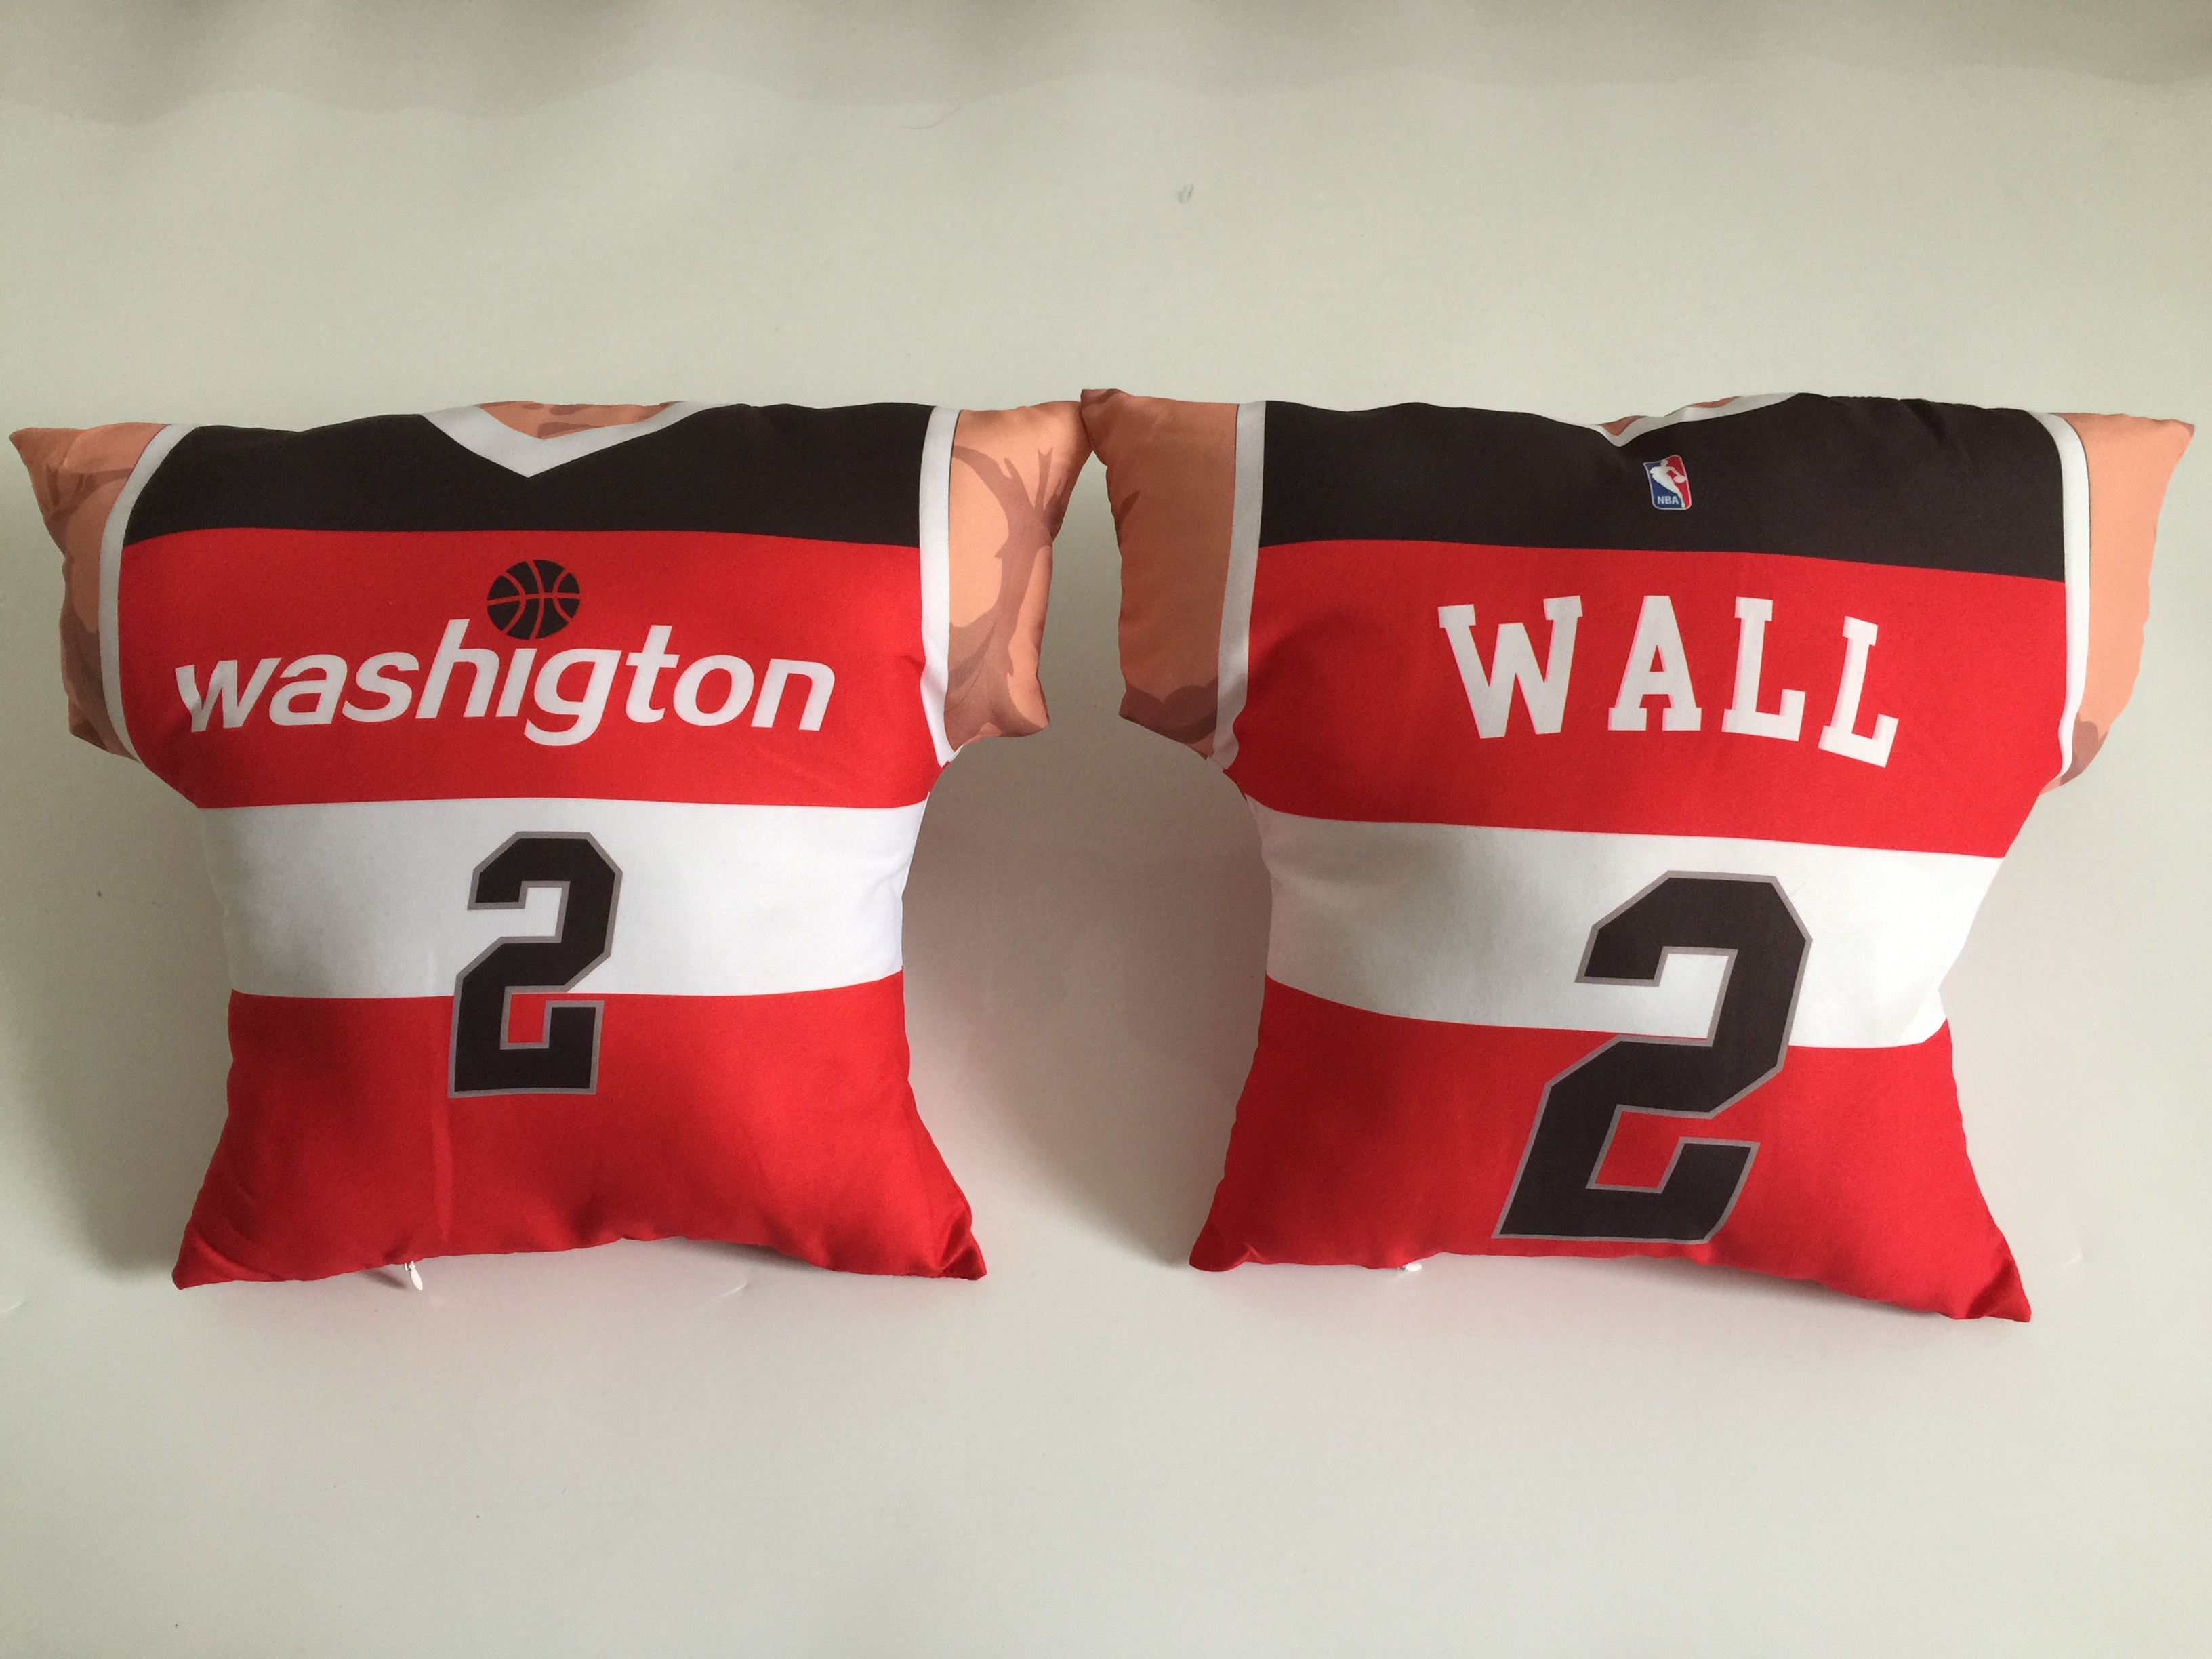 Washington Wizards 2 John Wall Red NBA Pillow